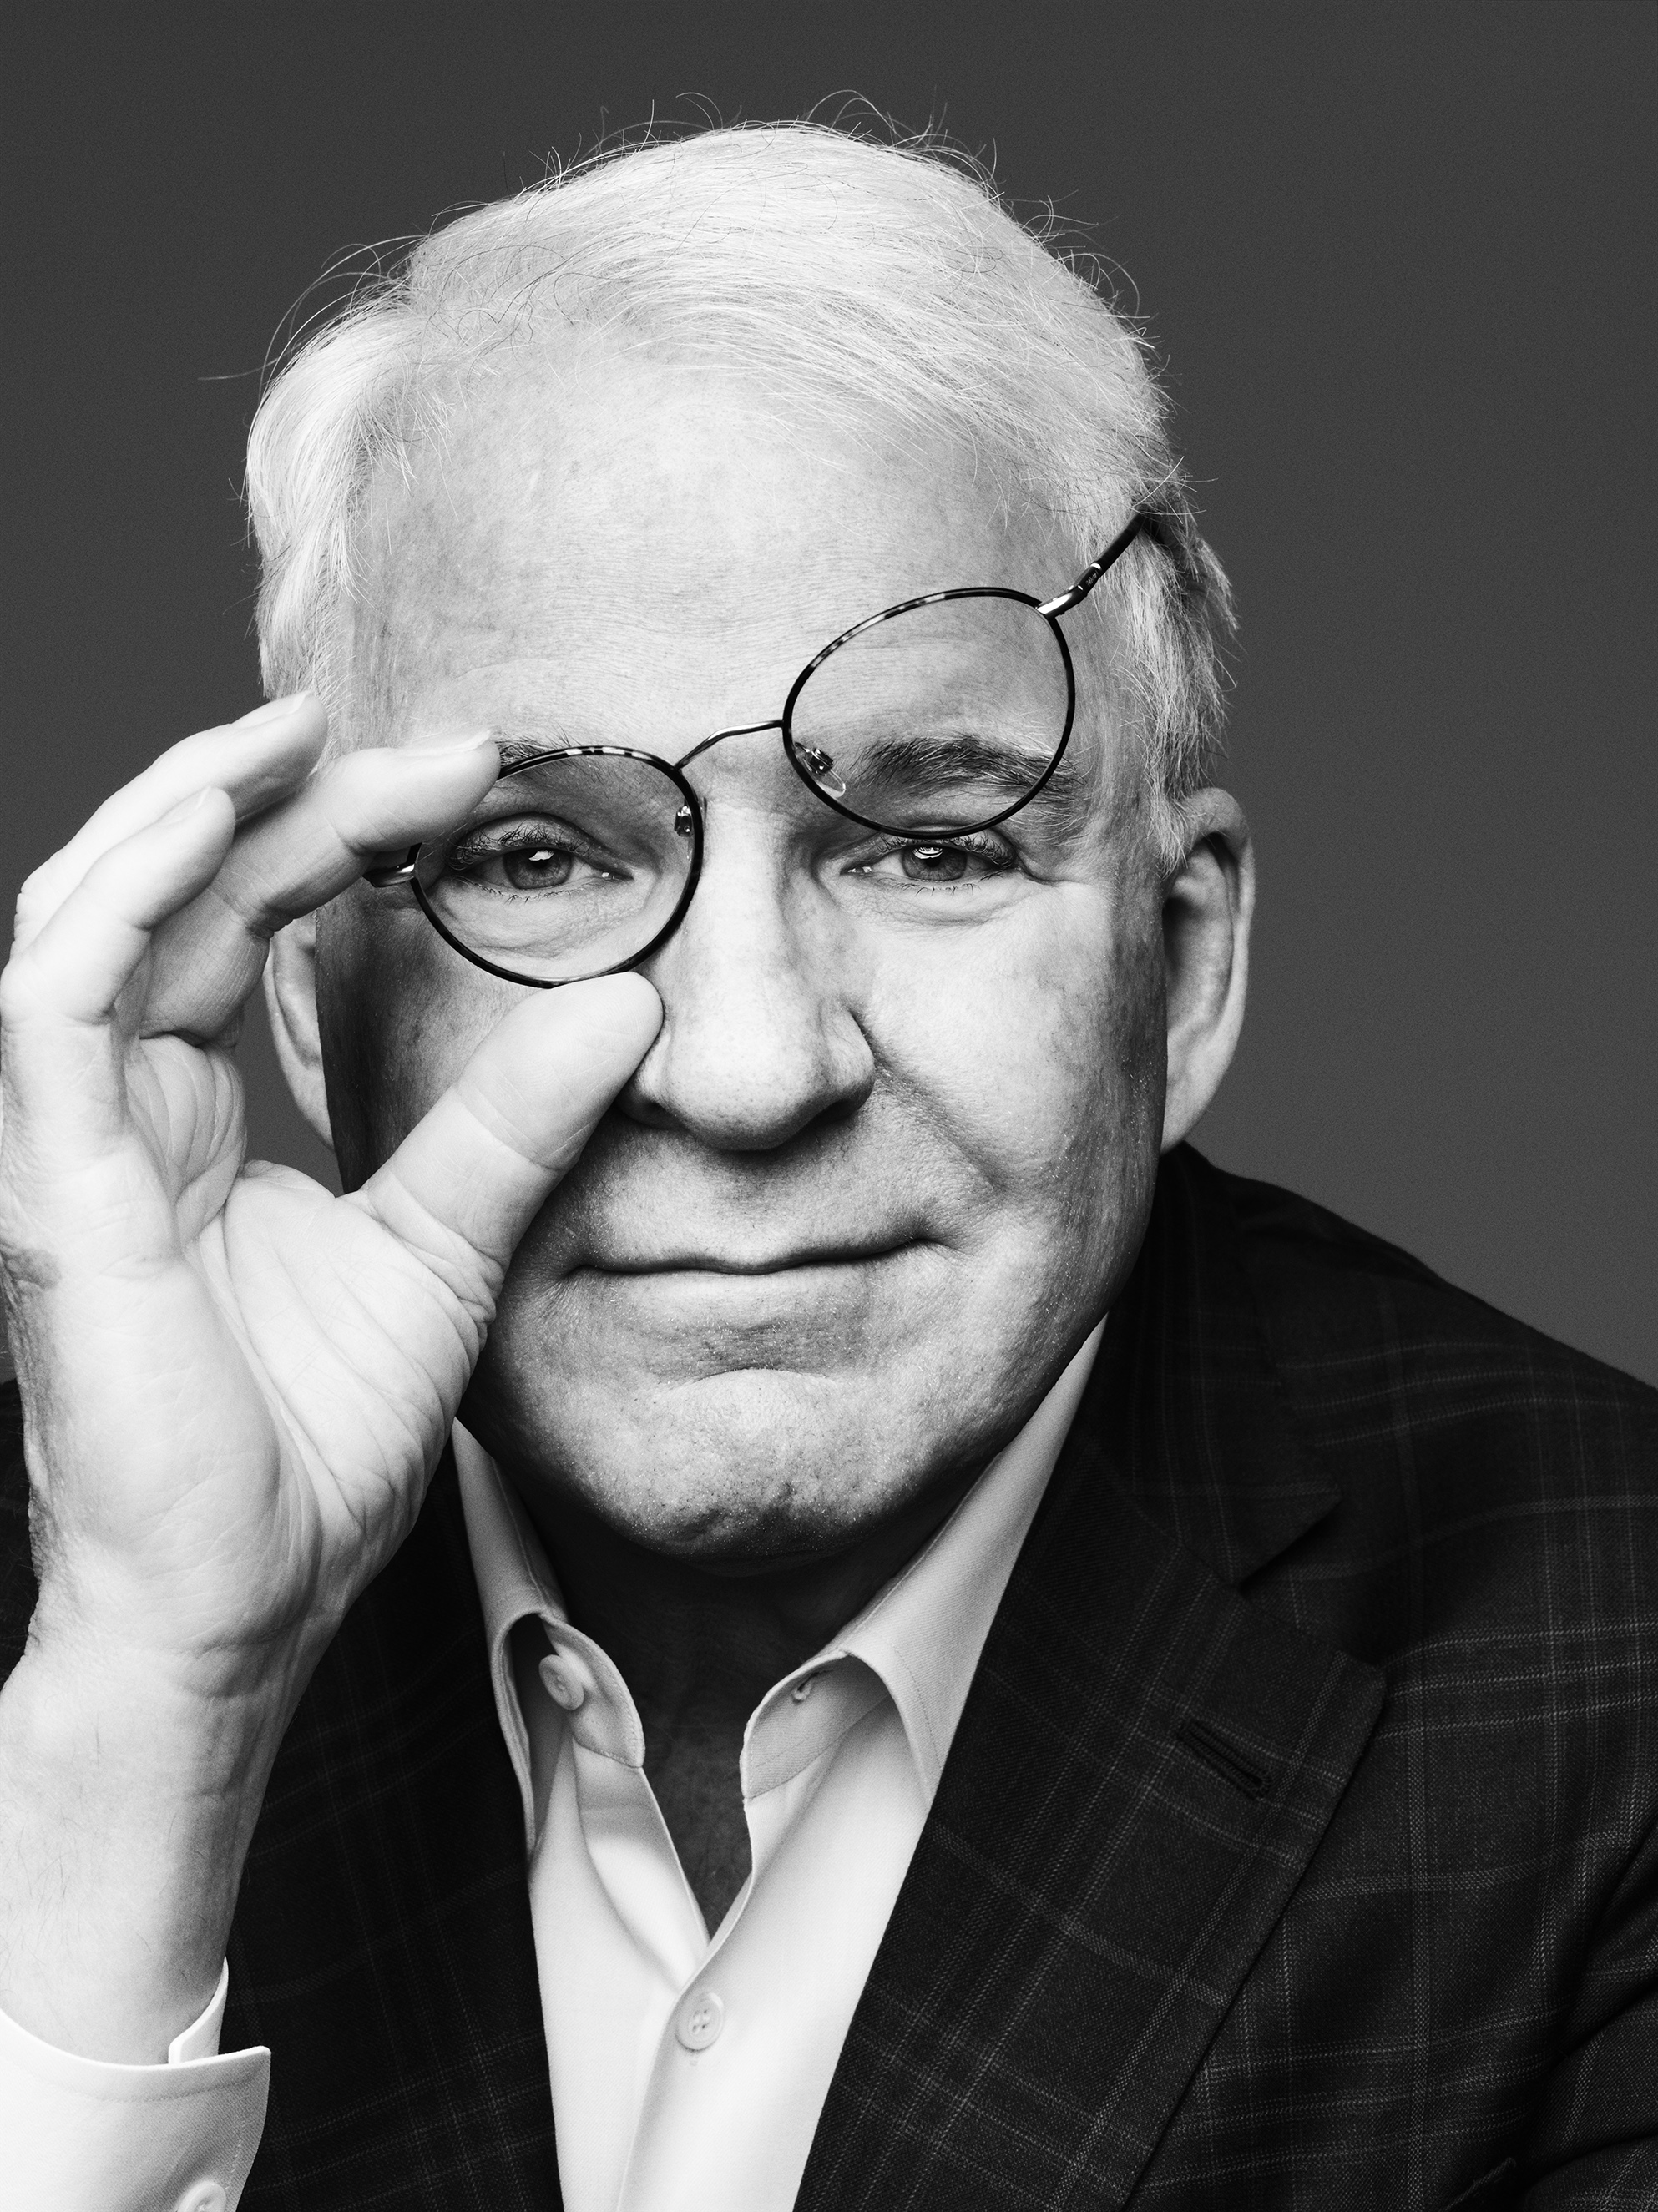 Steve Martin photographed in New York City on March 1, 2016. From  Broadway Goes Bluegrass.  April 4, 2016 issue.